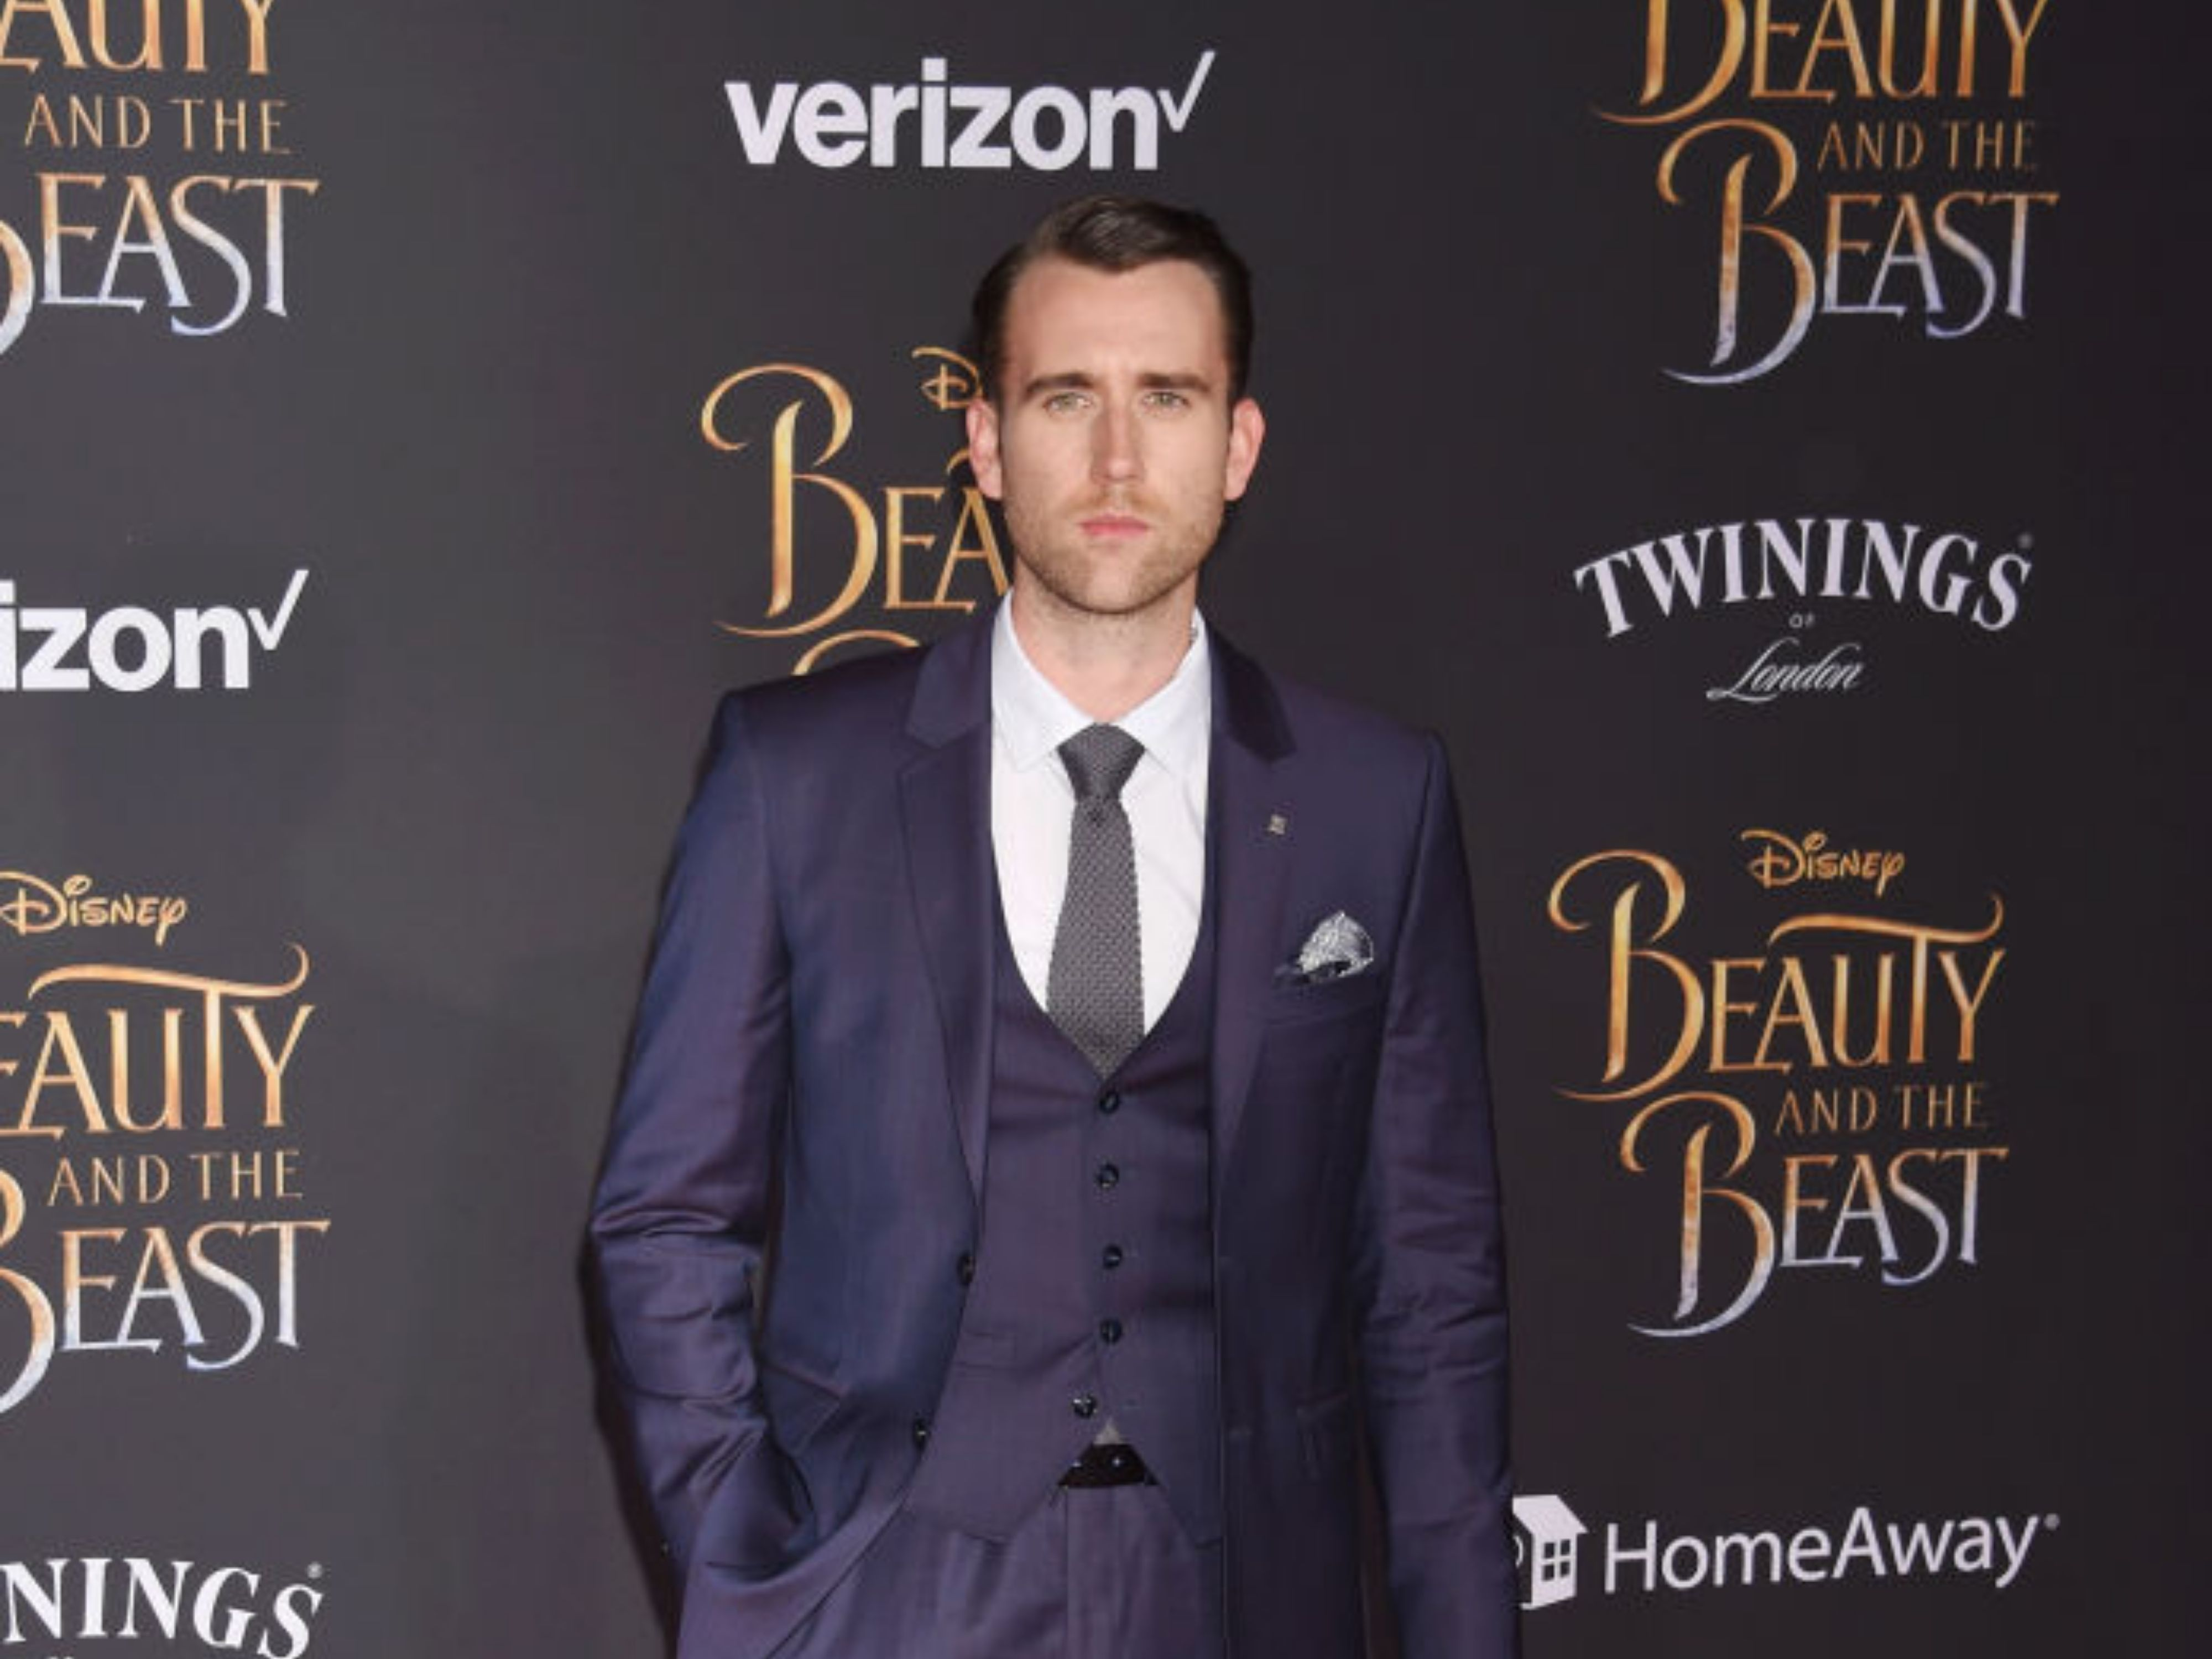 'Harry Potter' Star Matthew Lewis Starts Instagram Frenzy After Sharing Photo Wearing Skin-Tight Outfit